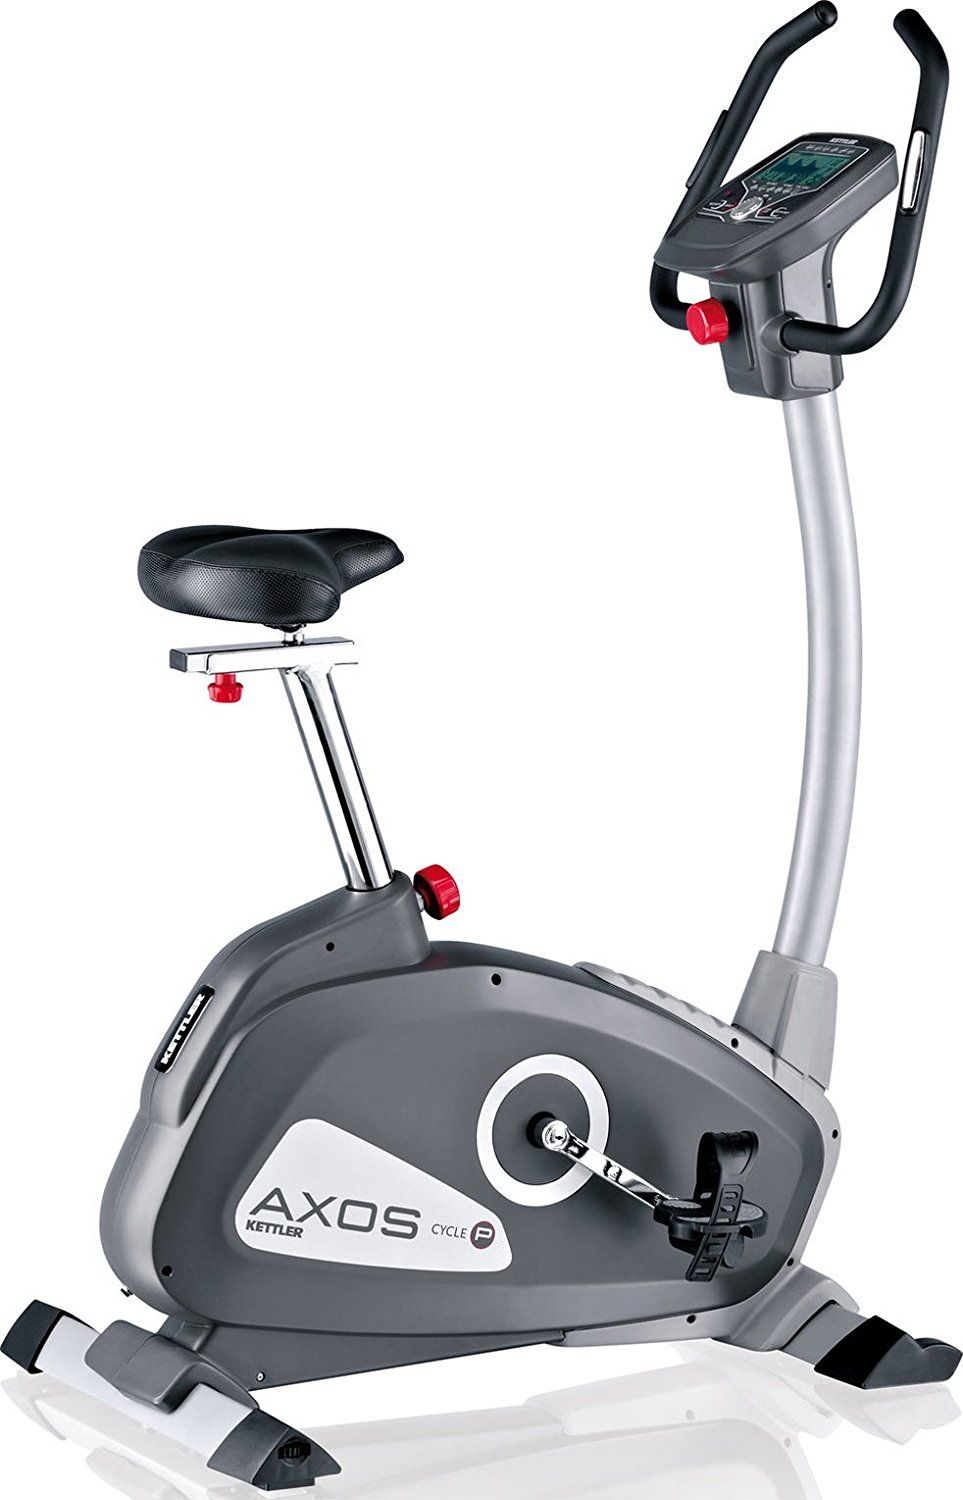 Kettler Axos Cycle P Upright Exercise Bike Review Upright